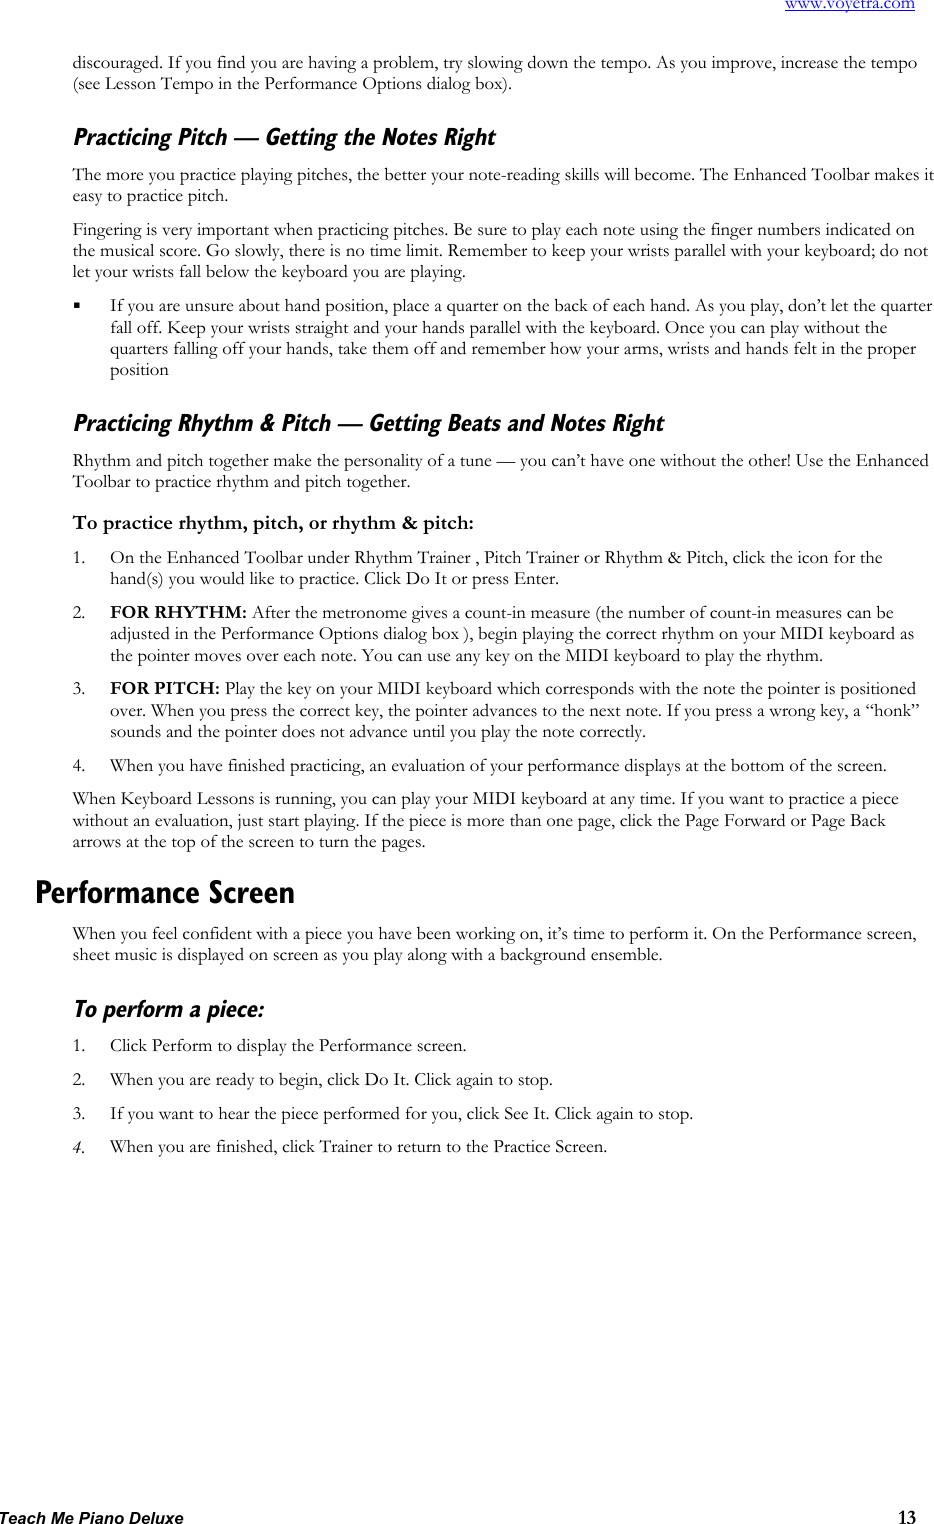 Turtle Beach Teach Me Piano Deluxe Users Manual